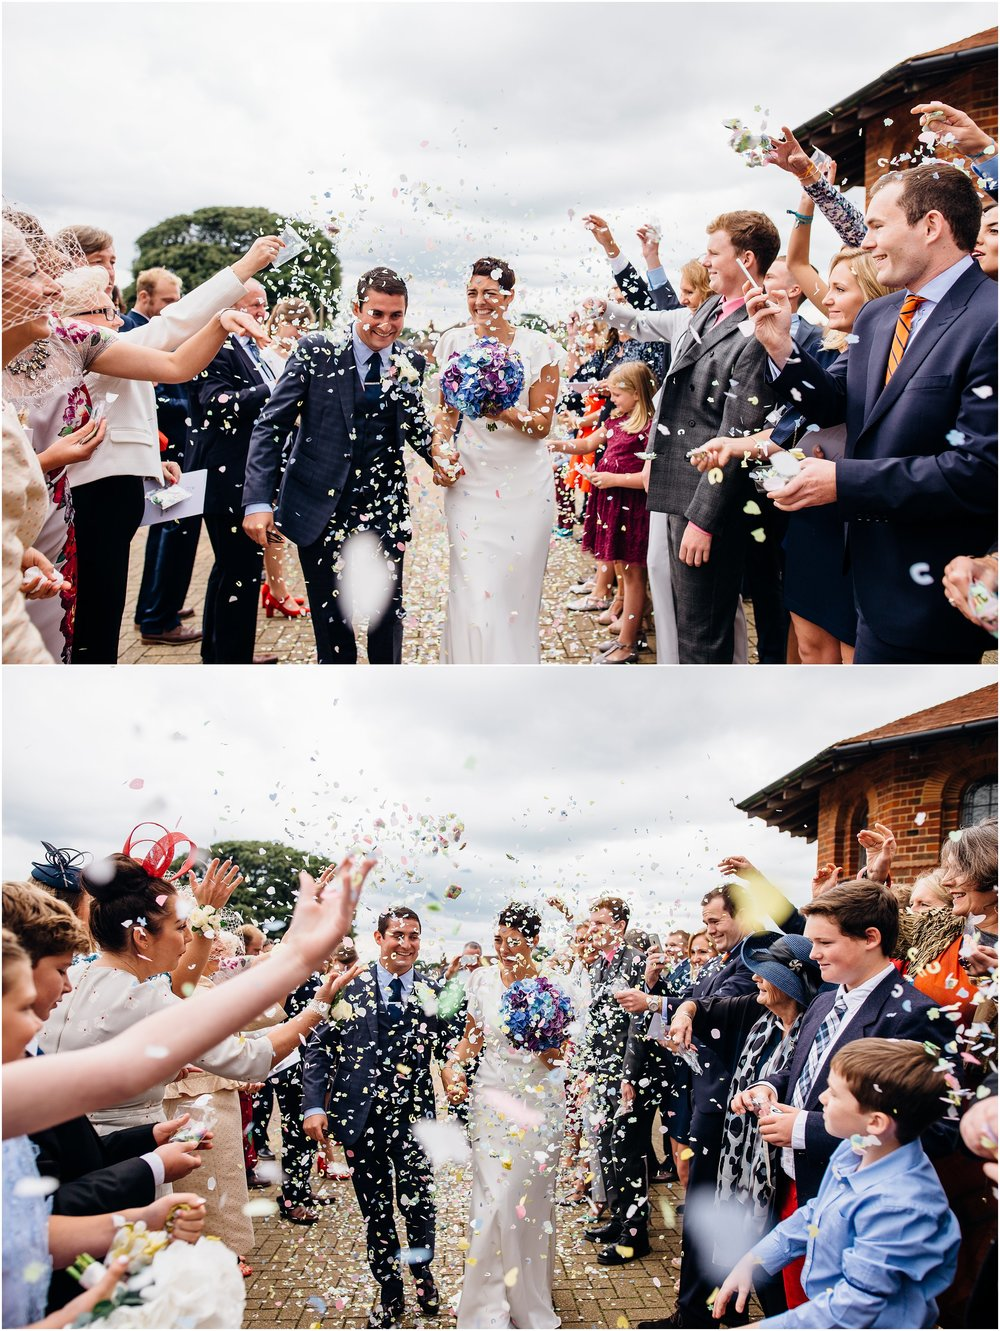 ALTERNATIVE STYLISH UK BARN WEDDING-ISLE OF WIGHT_0039.jpg